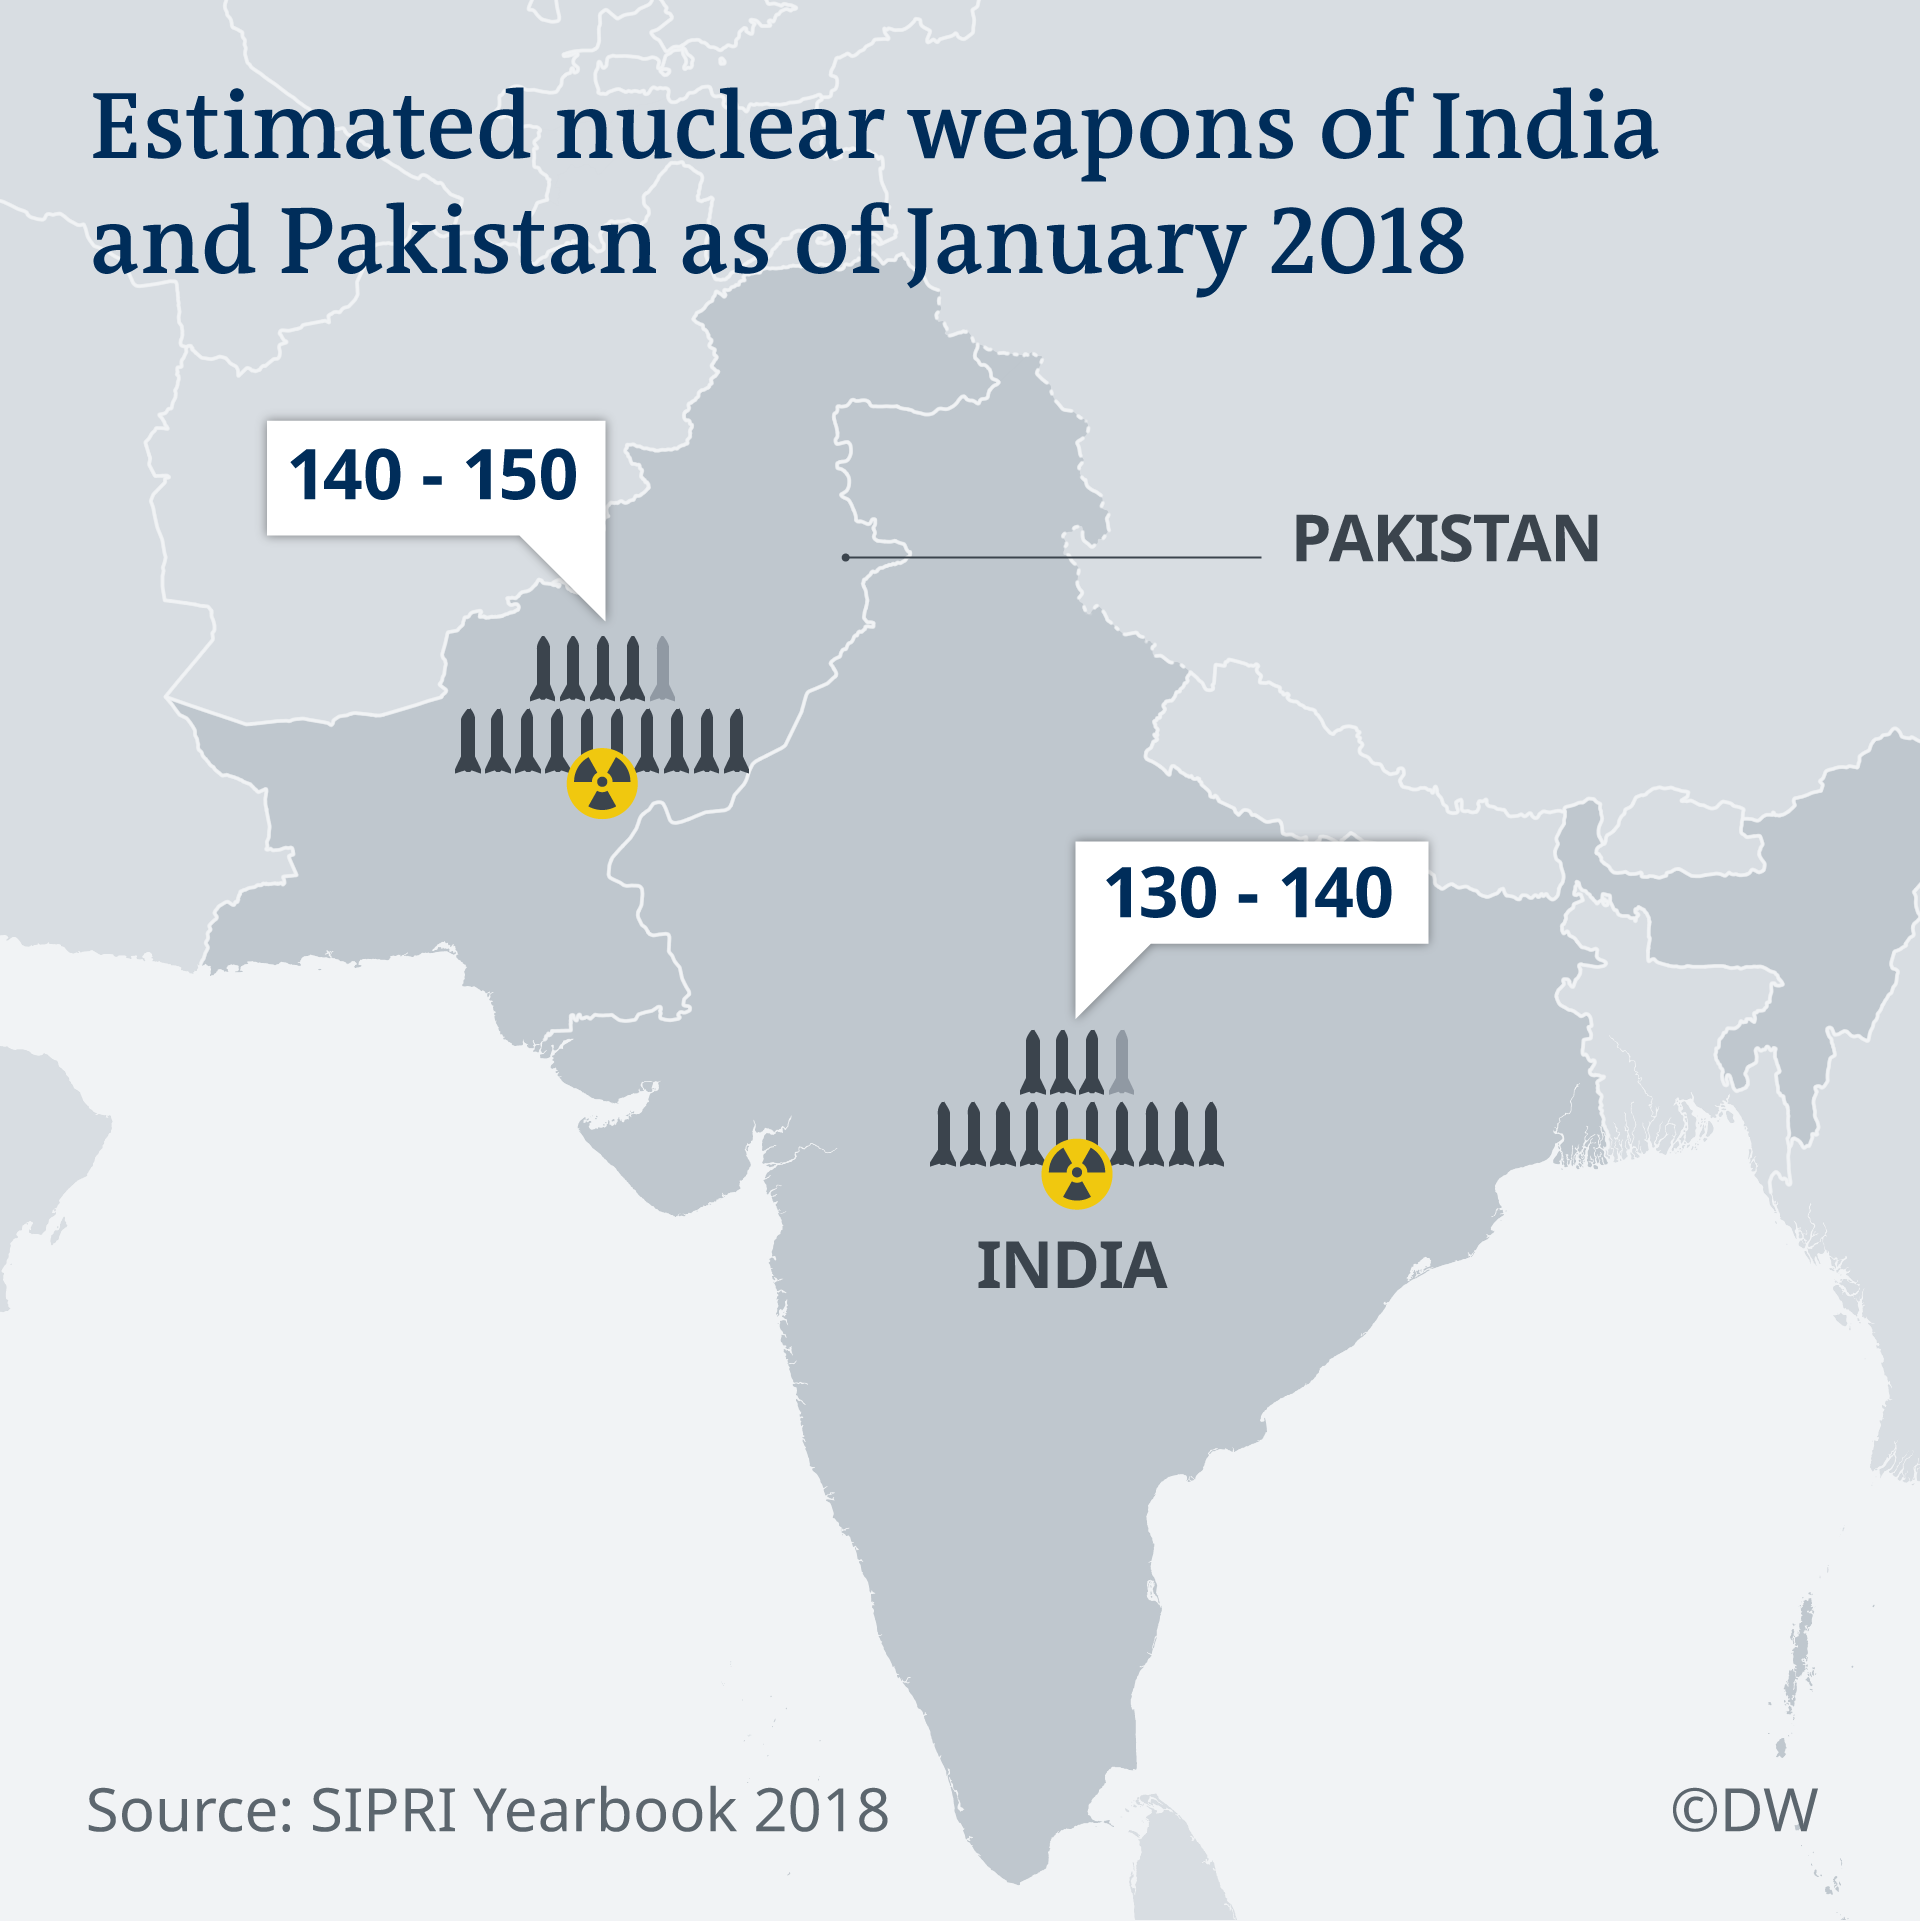 Nuclear fears abound after India-Pakistan military escalation | Asia